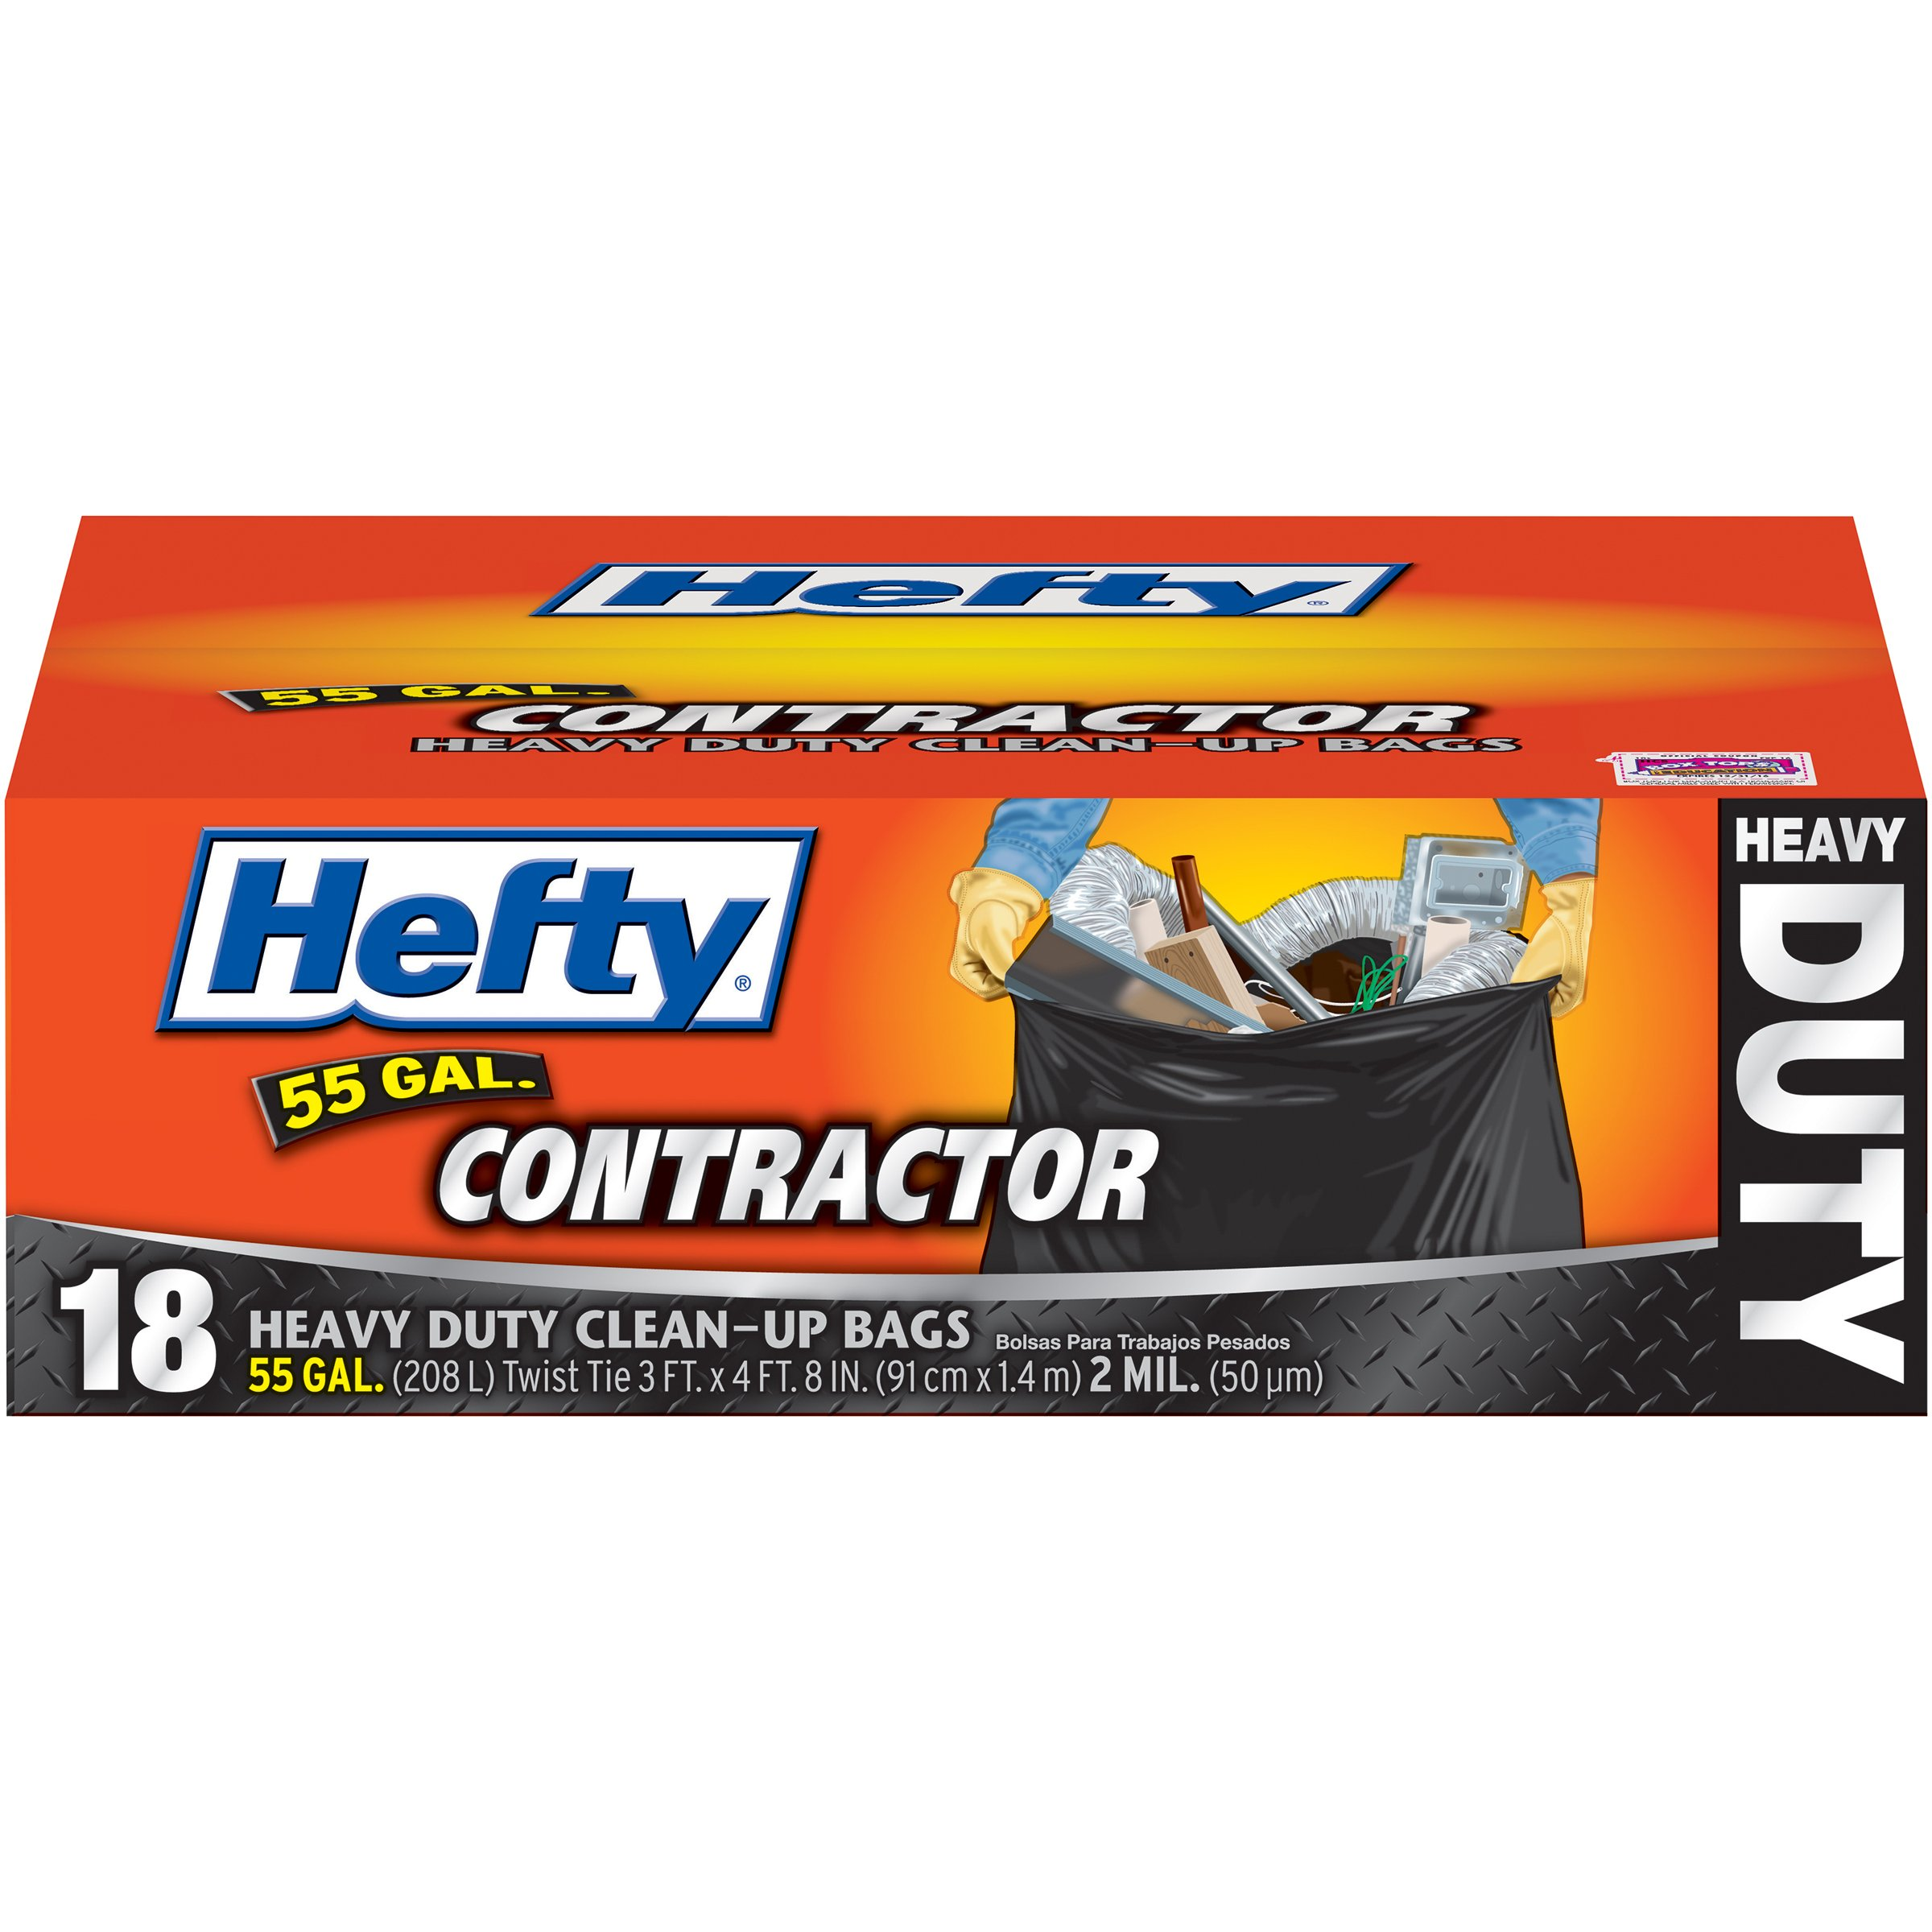 Hefty Heavy Duty Contractor Bags - 55 Gallon, 4 Packs of 18 Count (72 Total) by Hefty (Image #1)